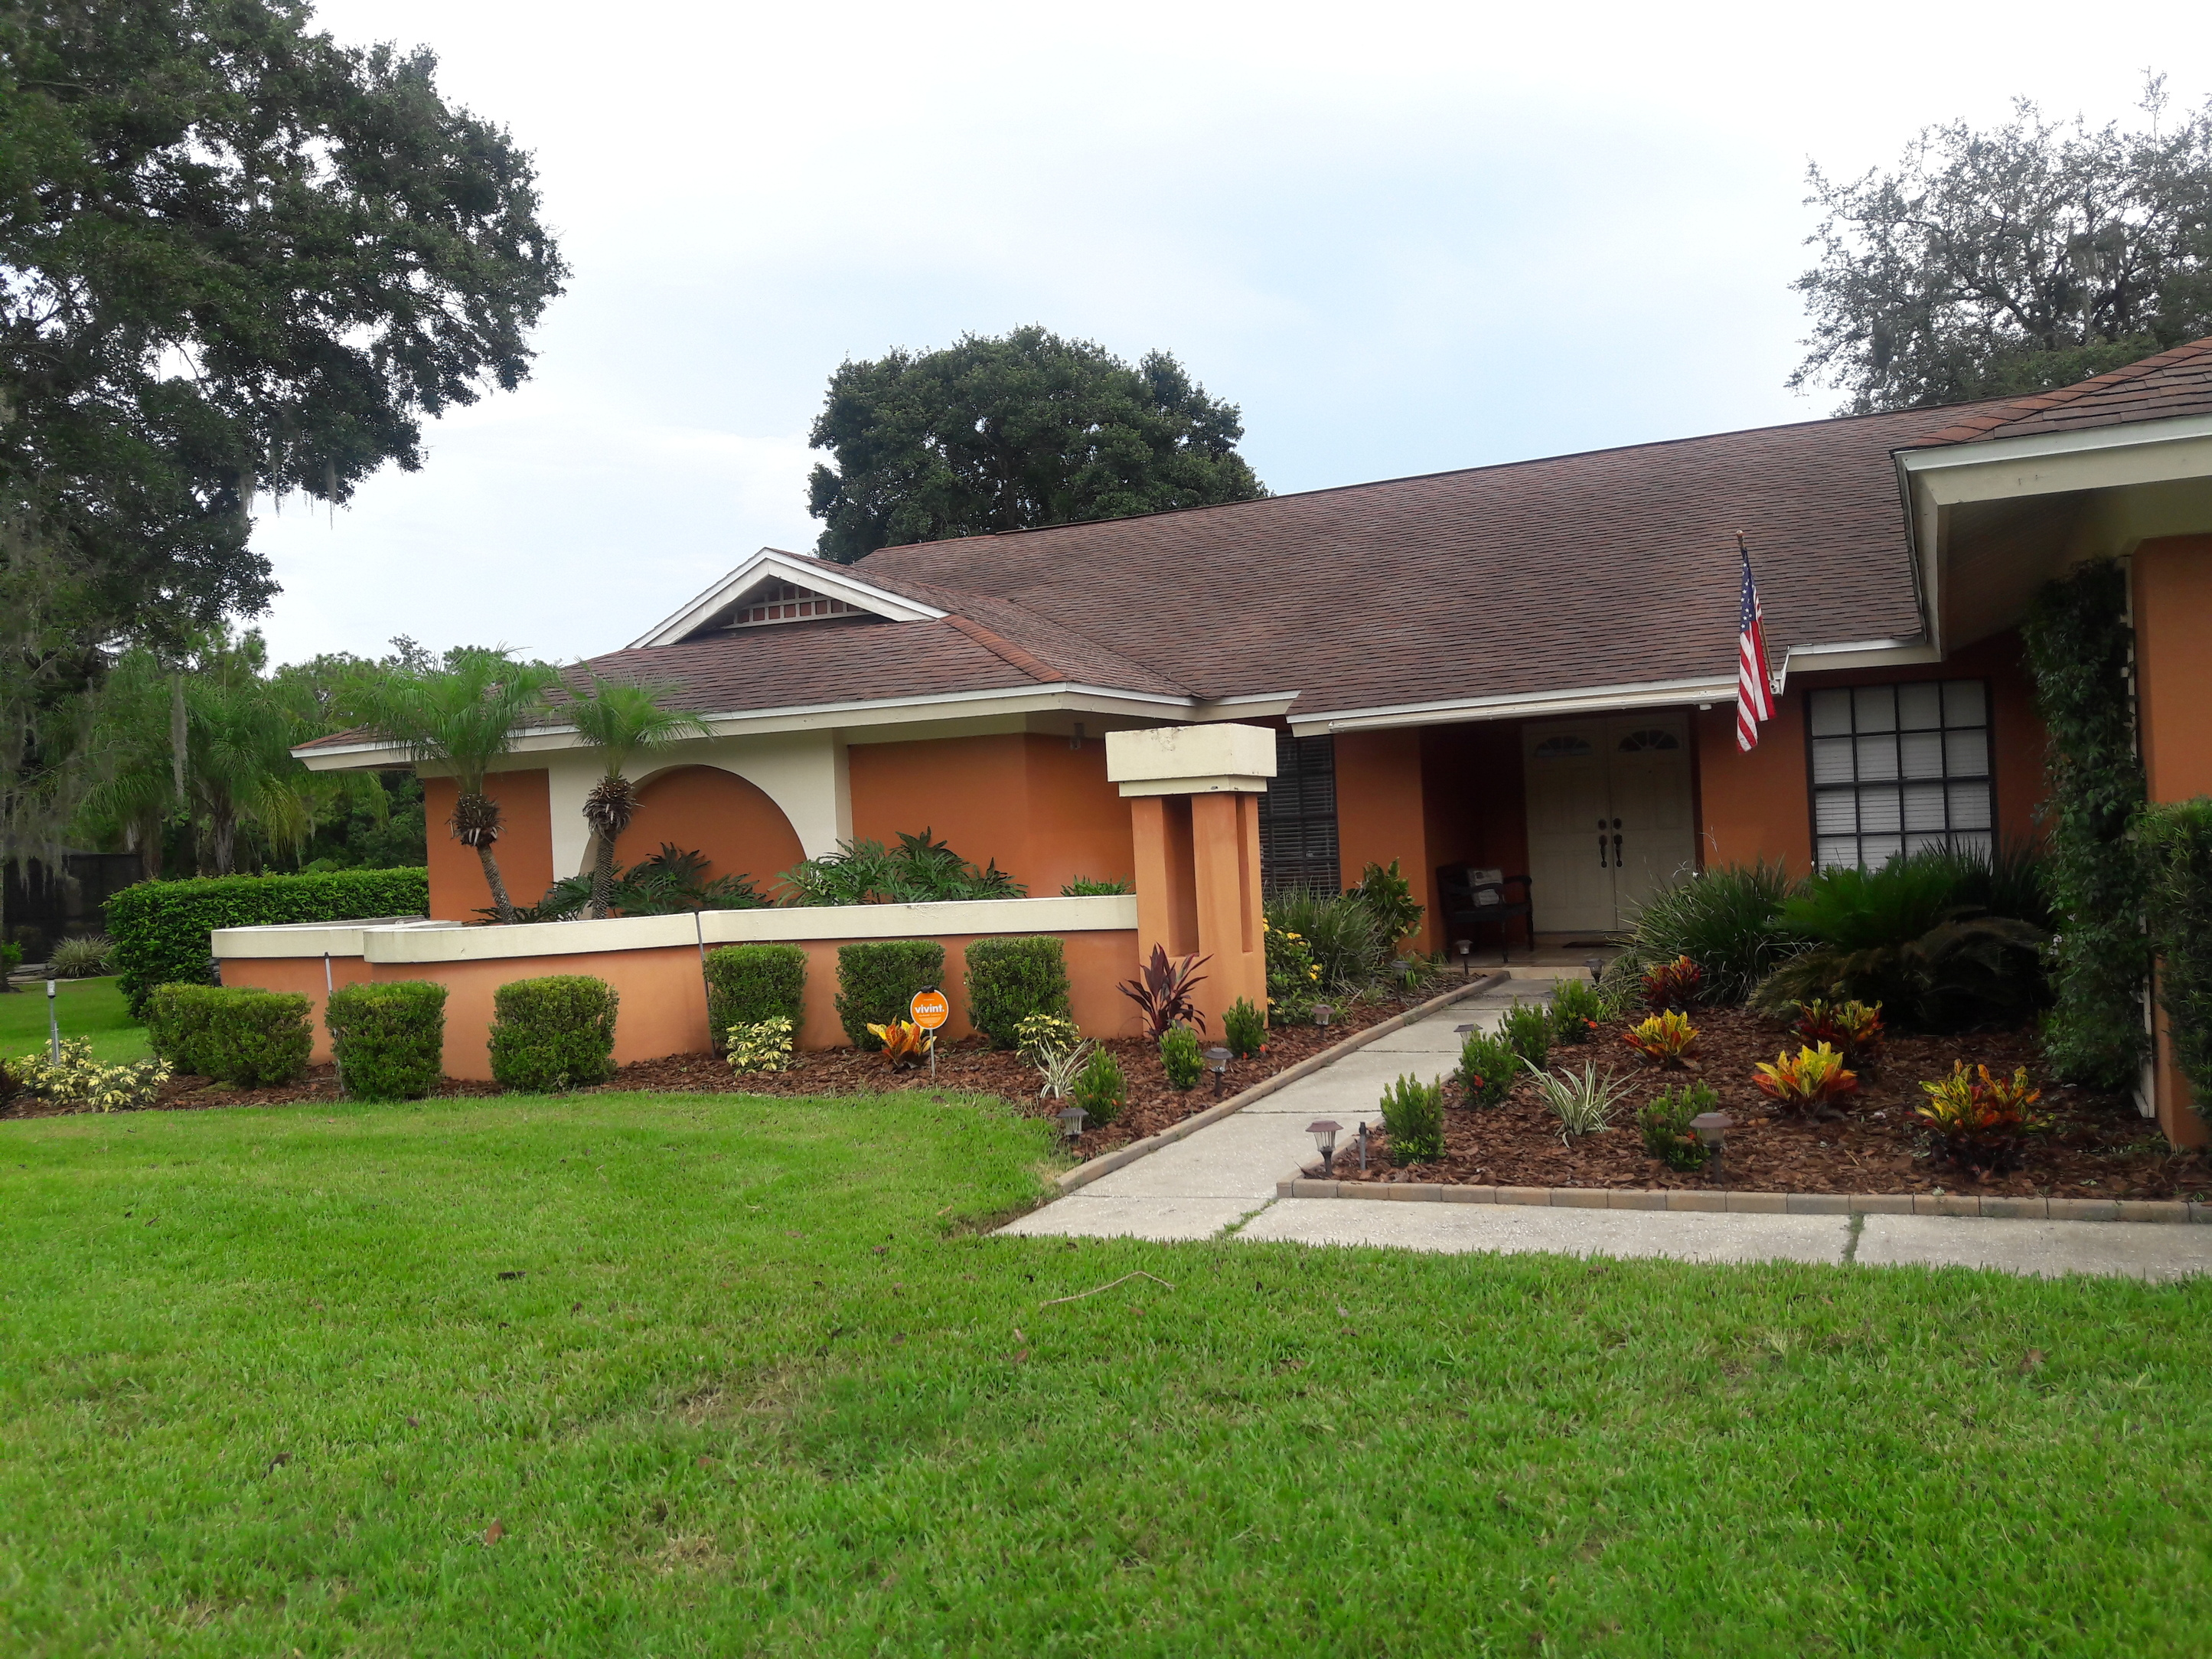 Lawn Mowing Contractor in Plant City, FL, 33566